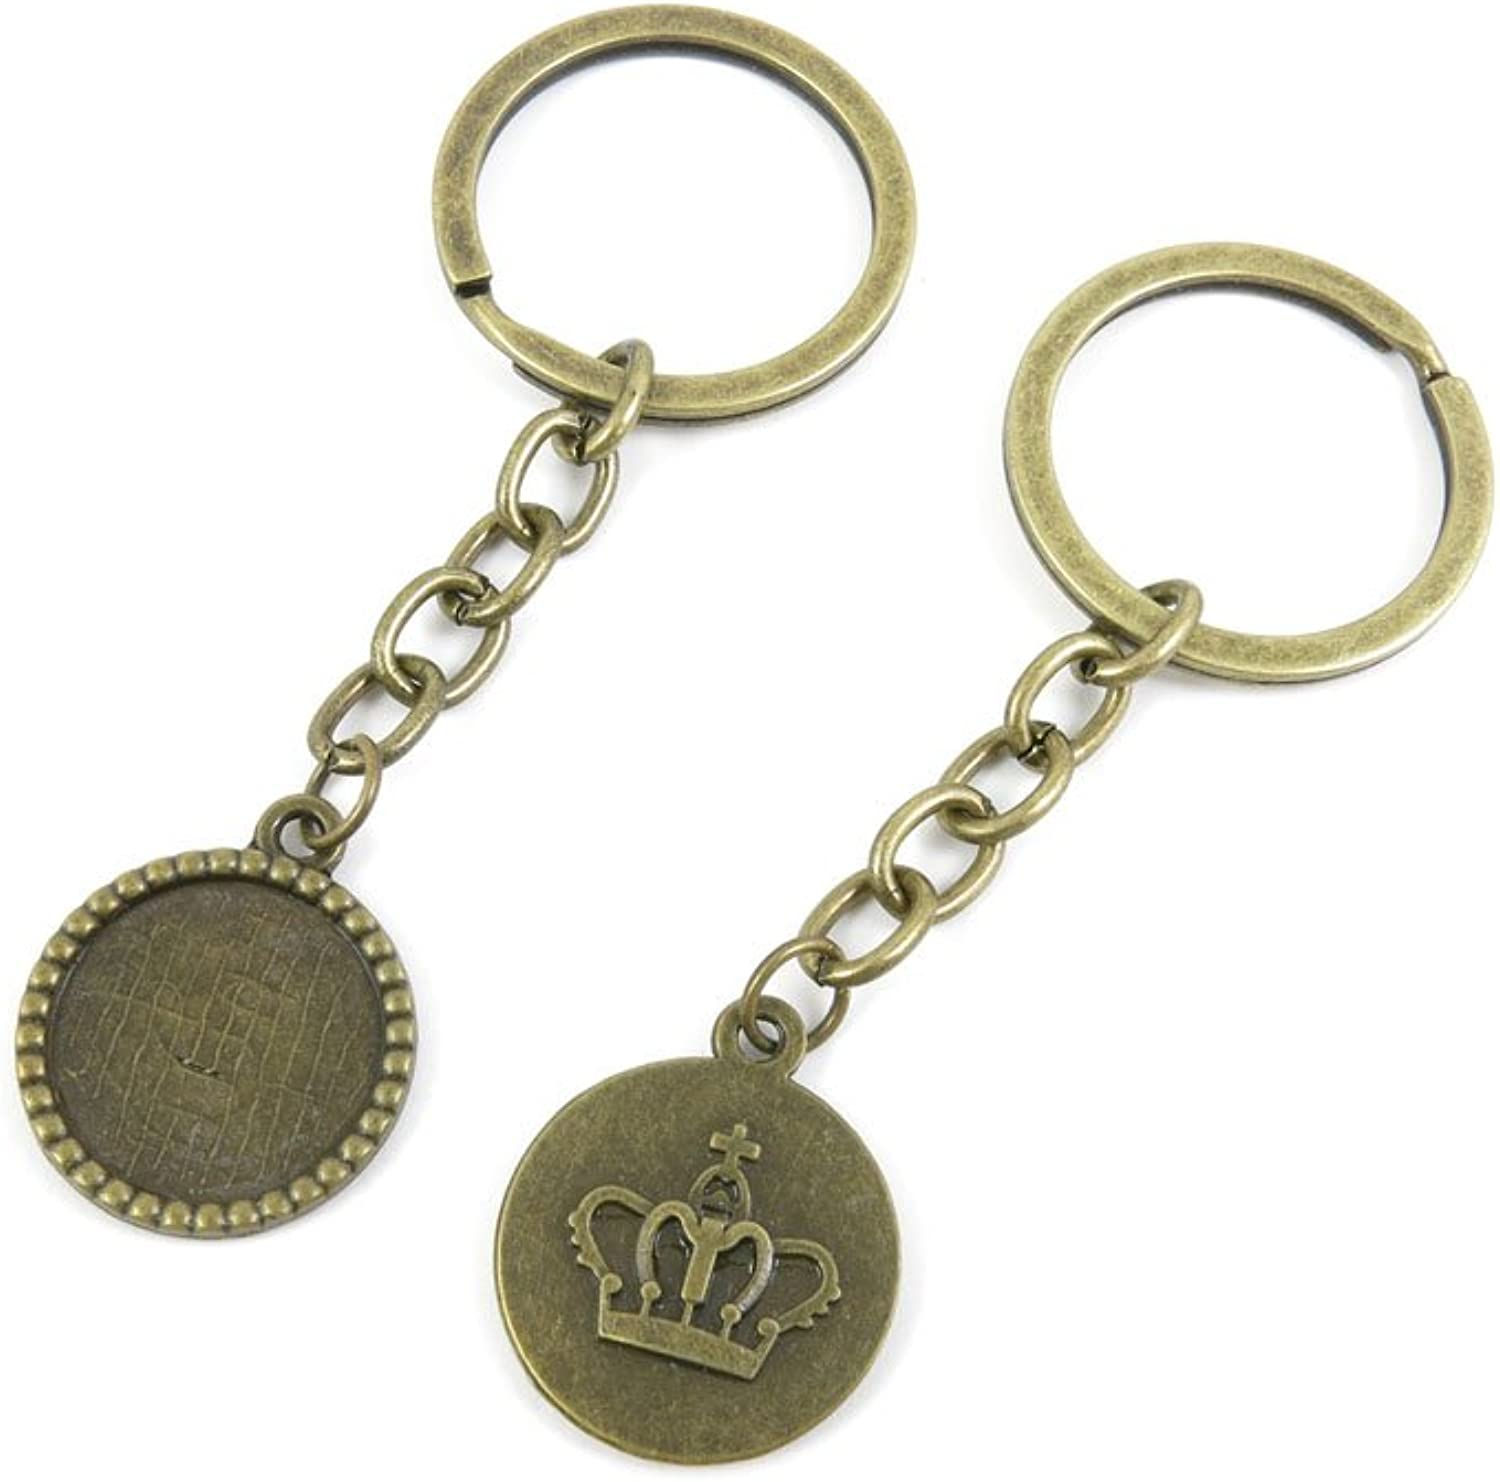 100 PCS Keyrings Keychains Key Ring Chains Tags Jewelry Findings Clasps Buckles Supplies Y2FK1 Crown Cabochon Blank Base